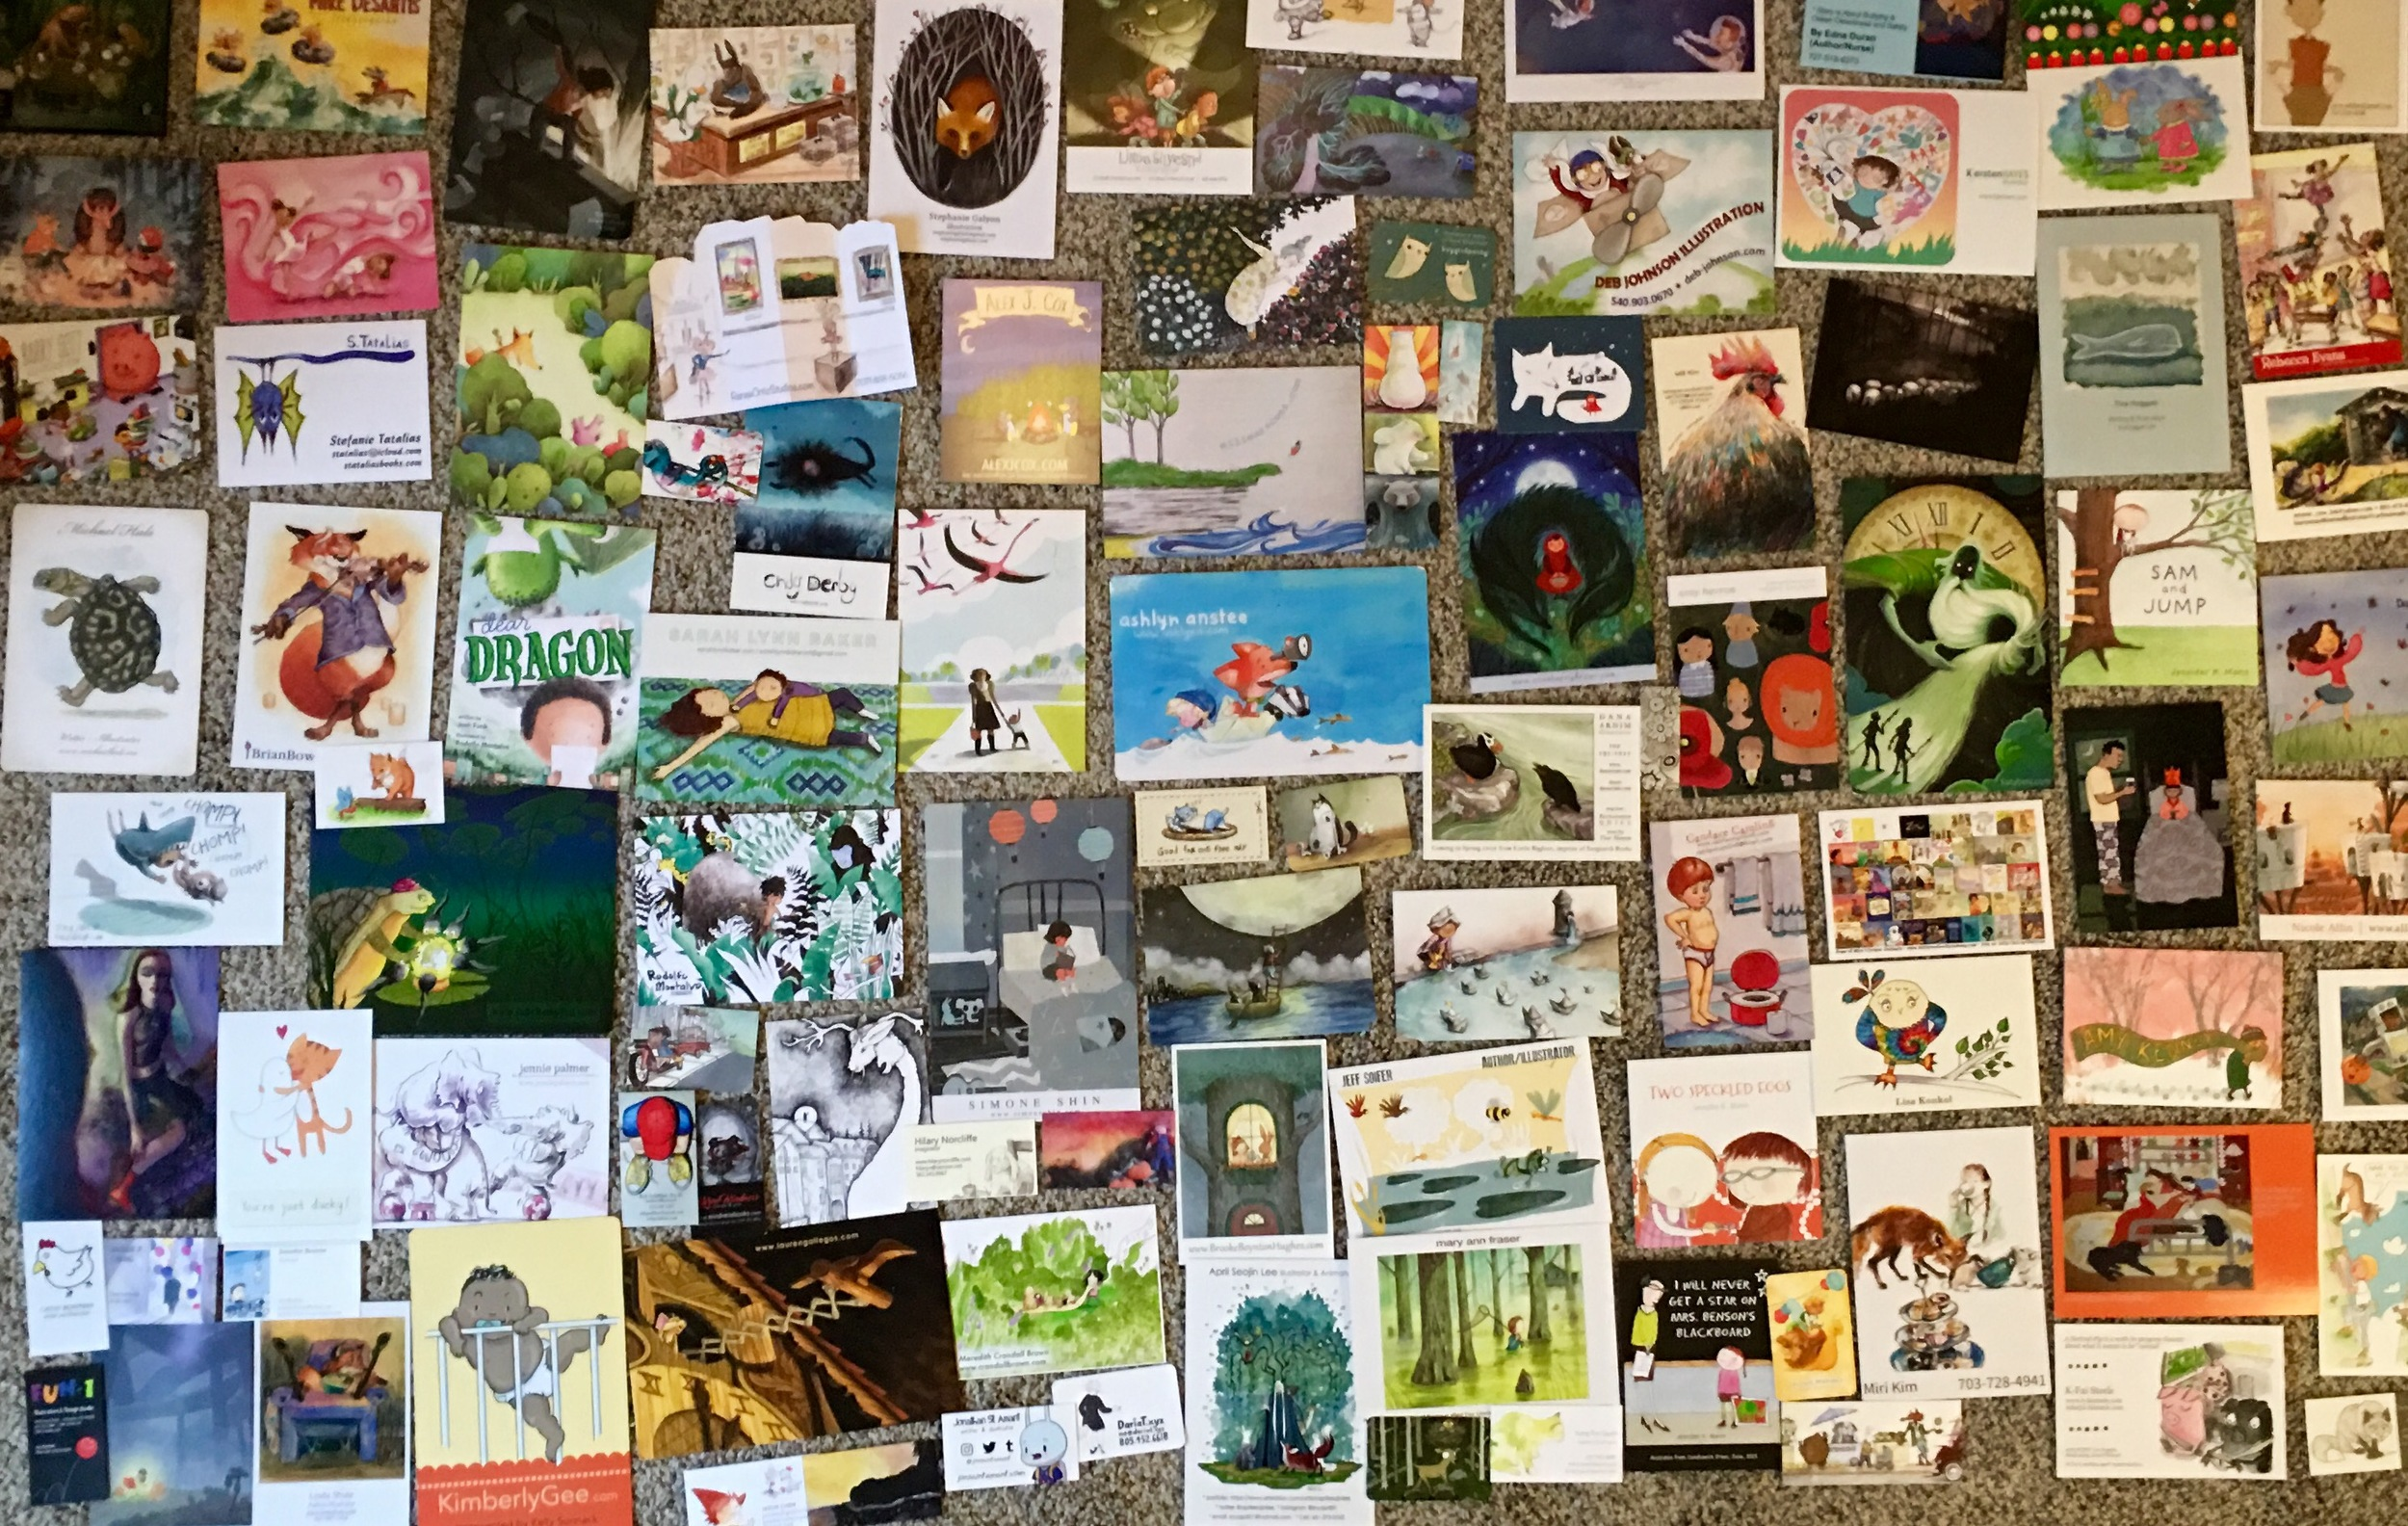 Illustrator promo cards!One of my favorites parts of attending SCBWI conferences.It feels so special to meet other artists and take a bit of their art home.